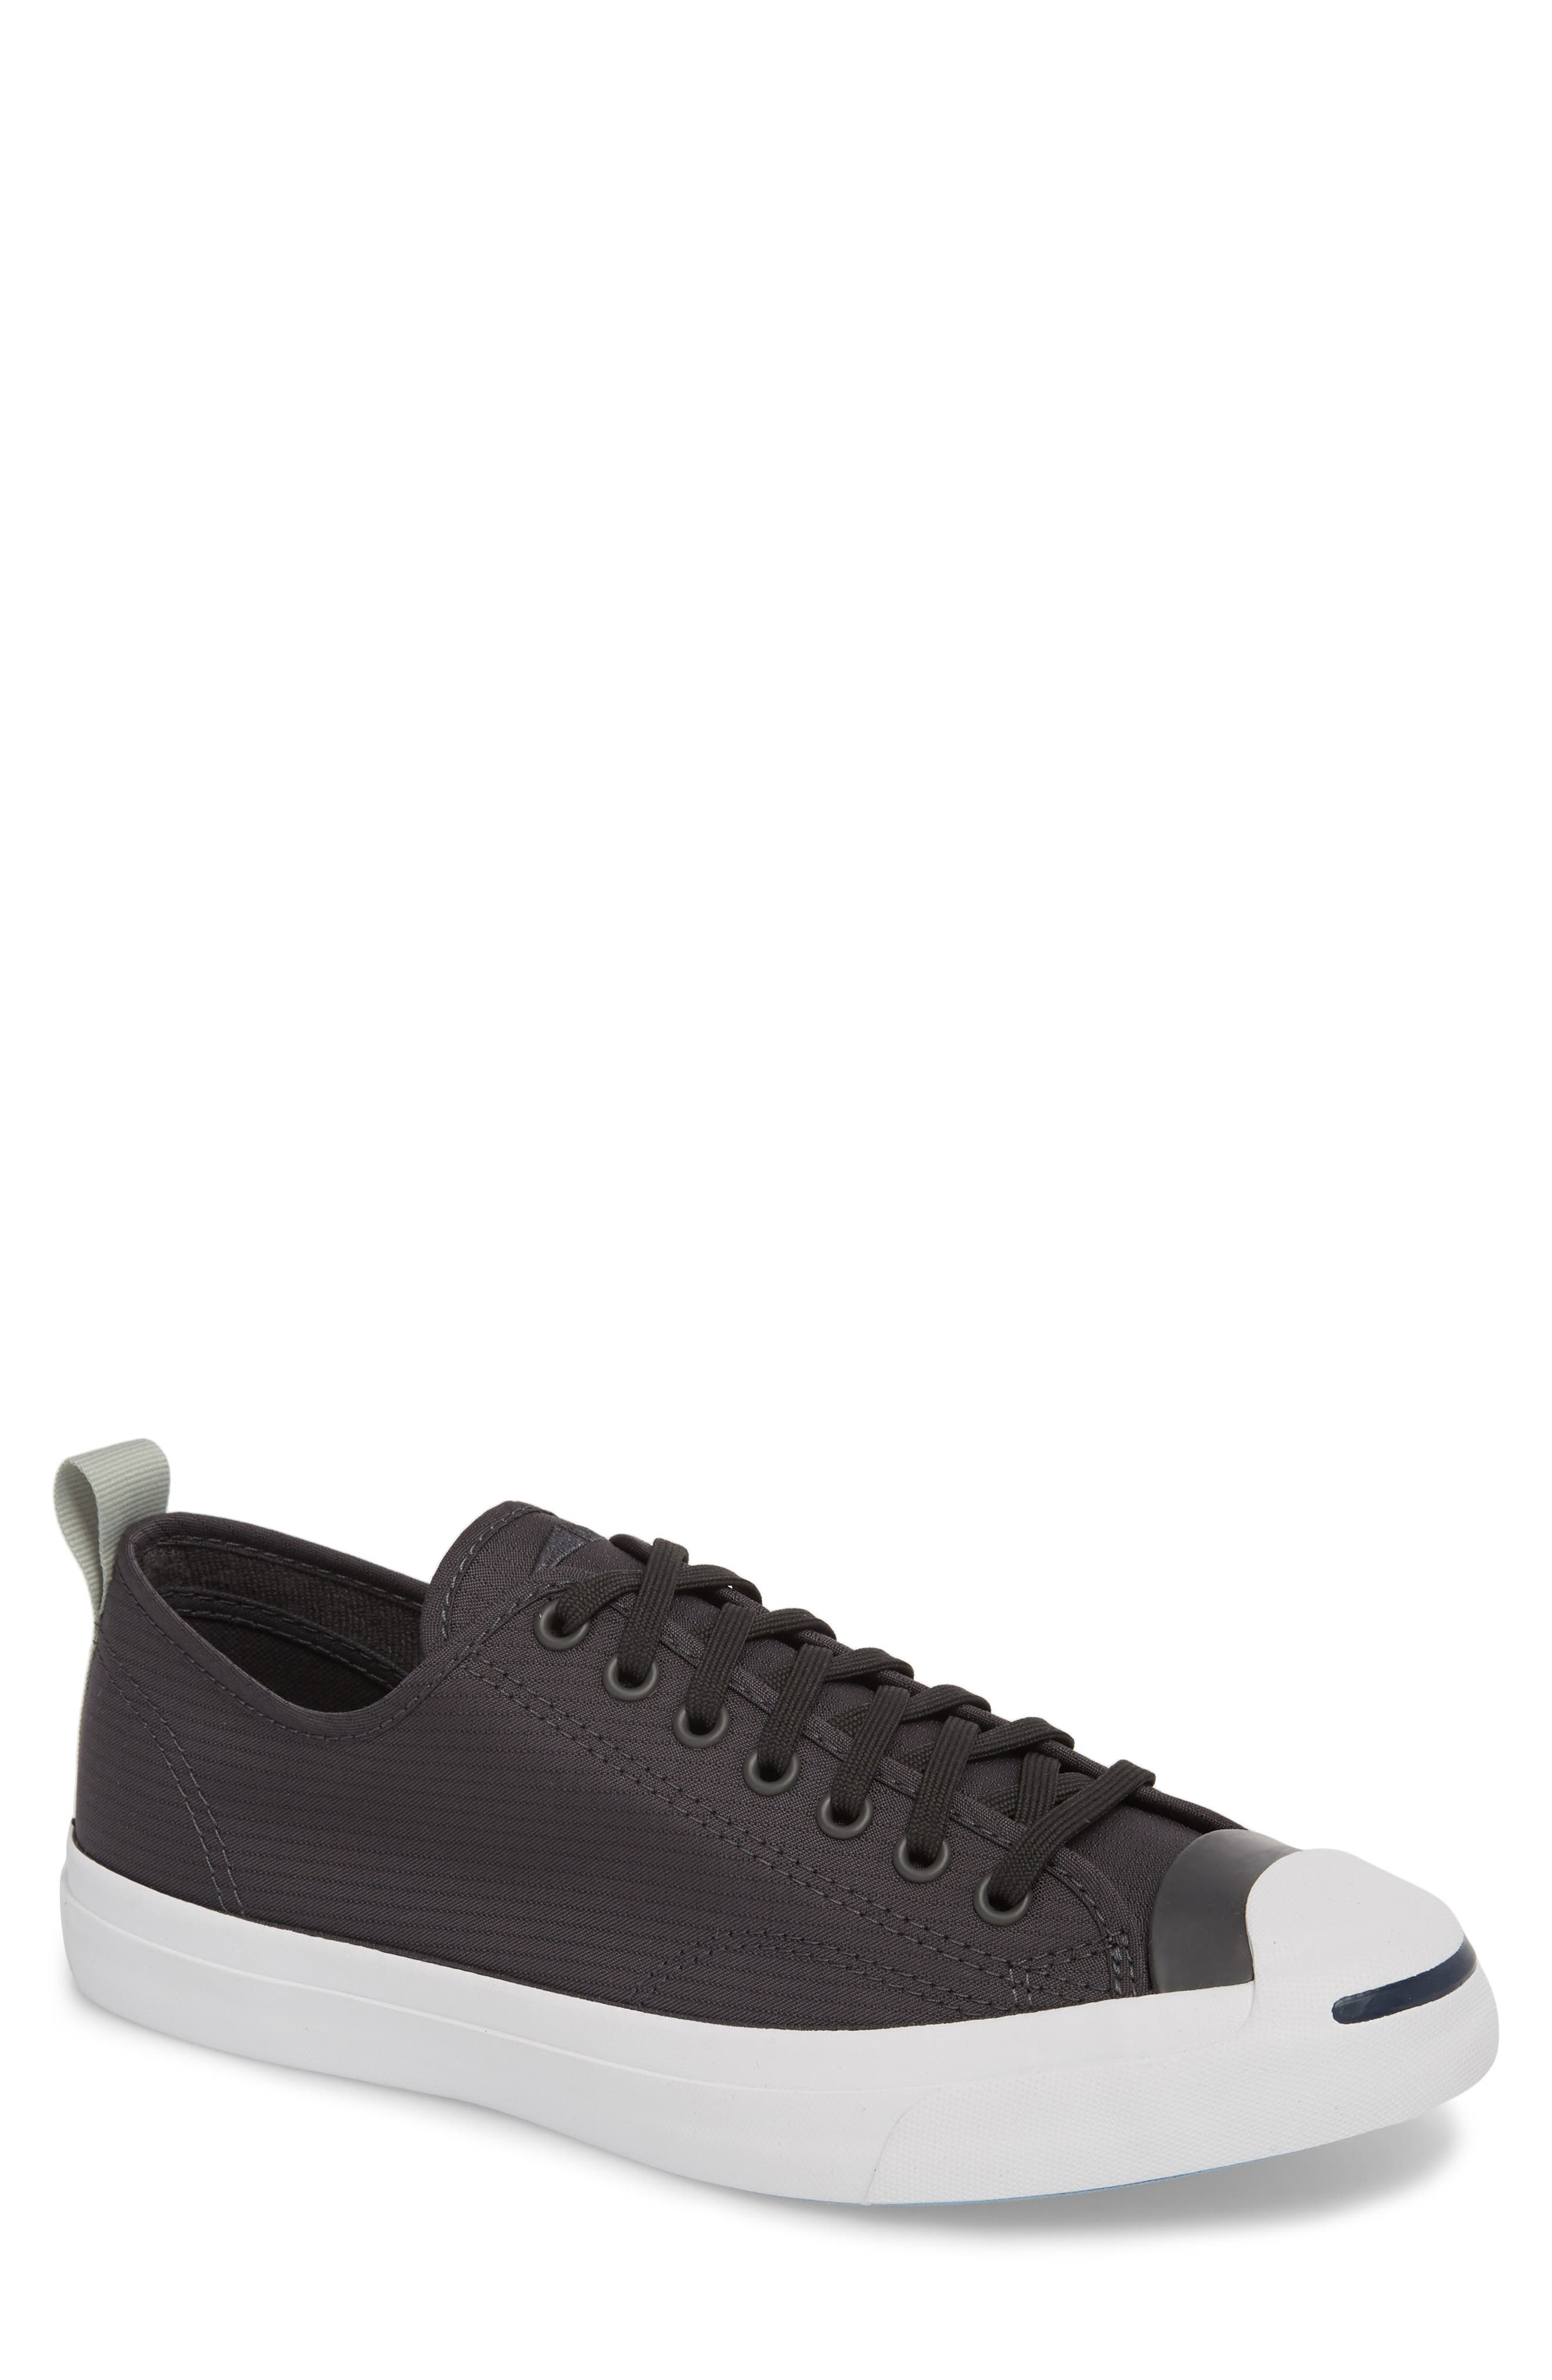 Jack Purcell Ripstop Sneaker,                         Main,                         color, Black